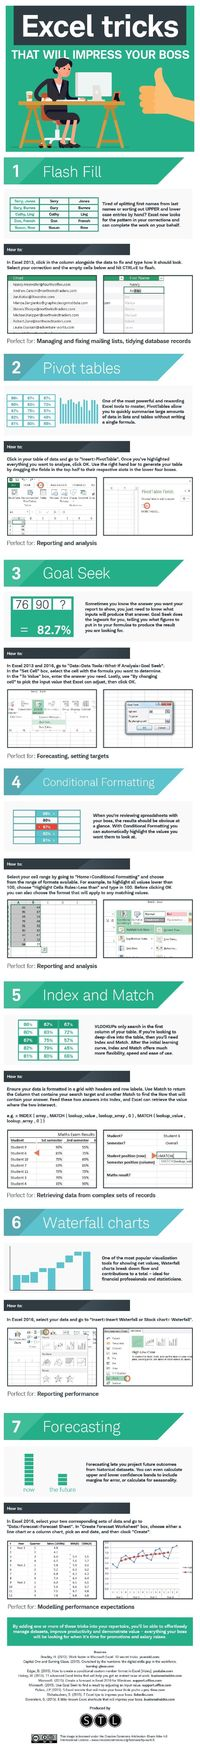 Microsoft Excel is packed with useful data management features that don't see a lot of use, like pivot tables, index and match, and conditional formatting. If y